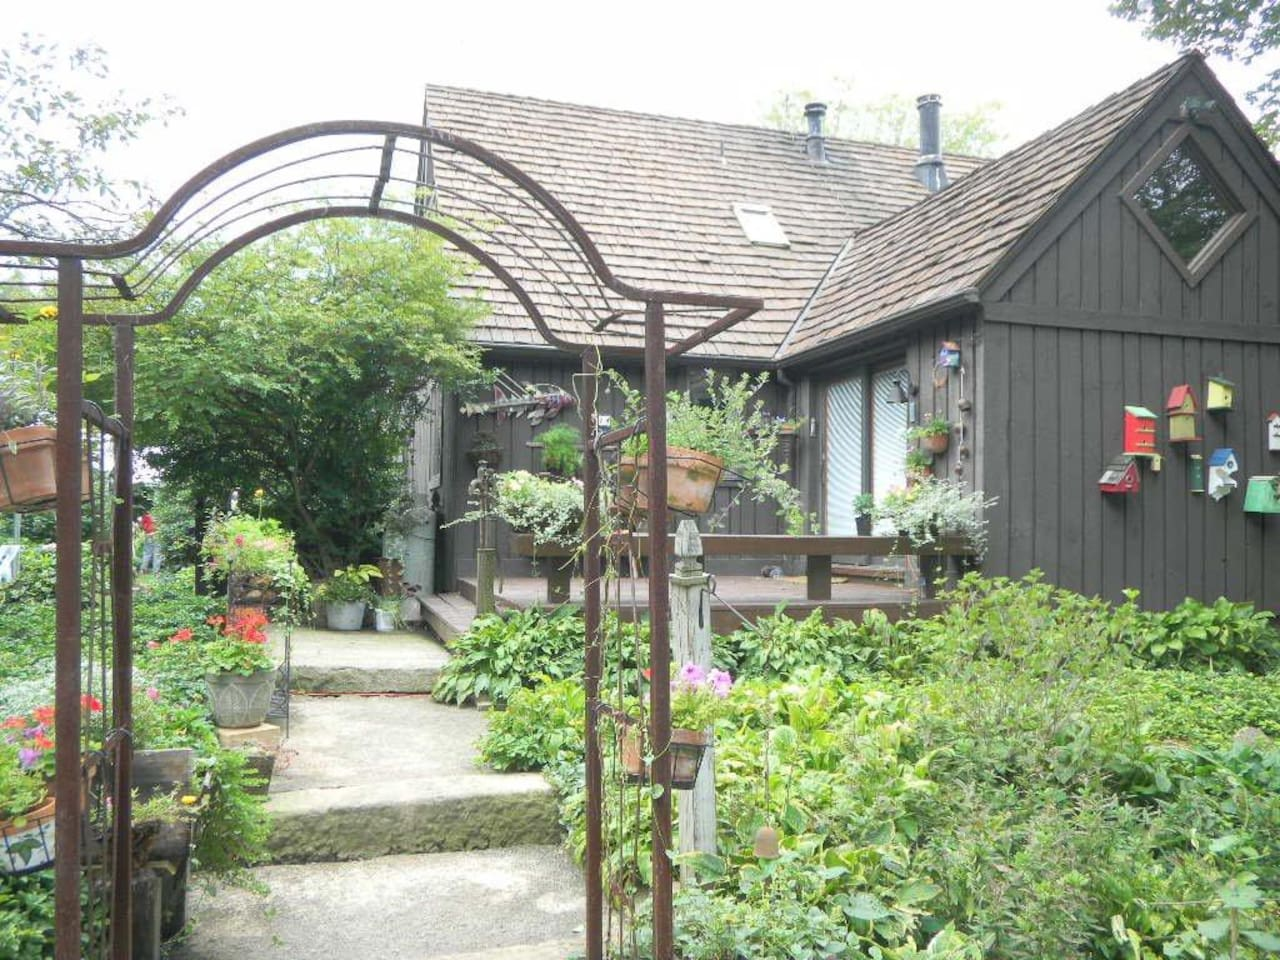 Front entrance of the rustic, charming house and gardens.